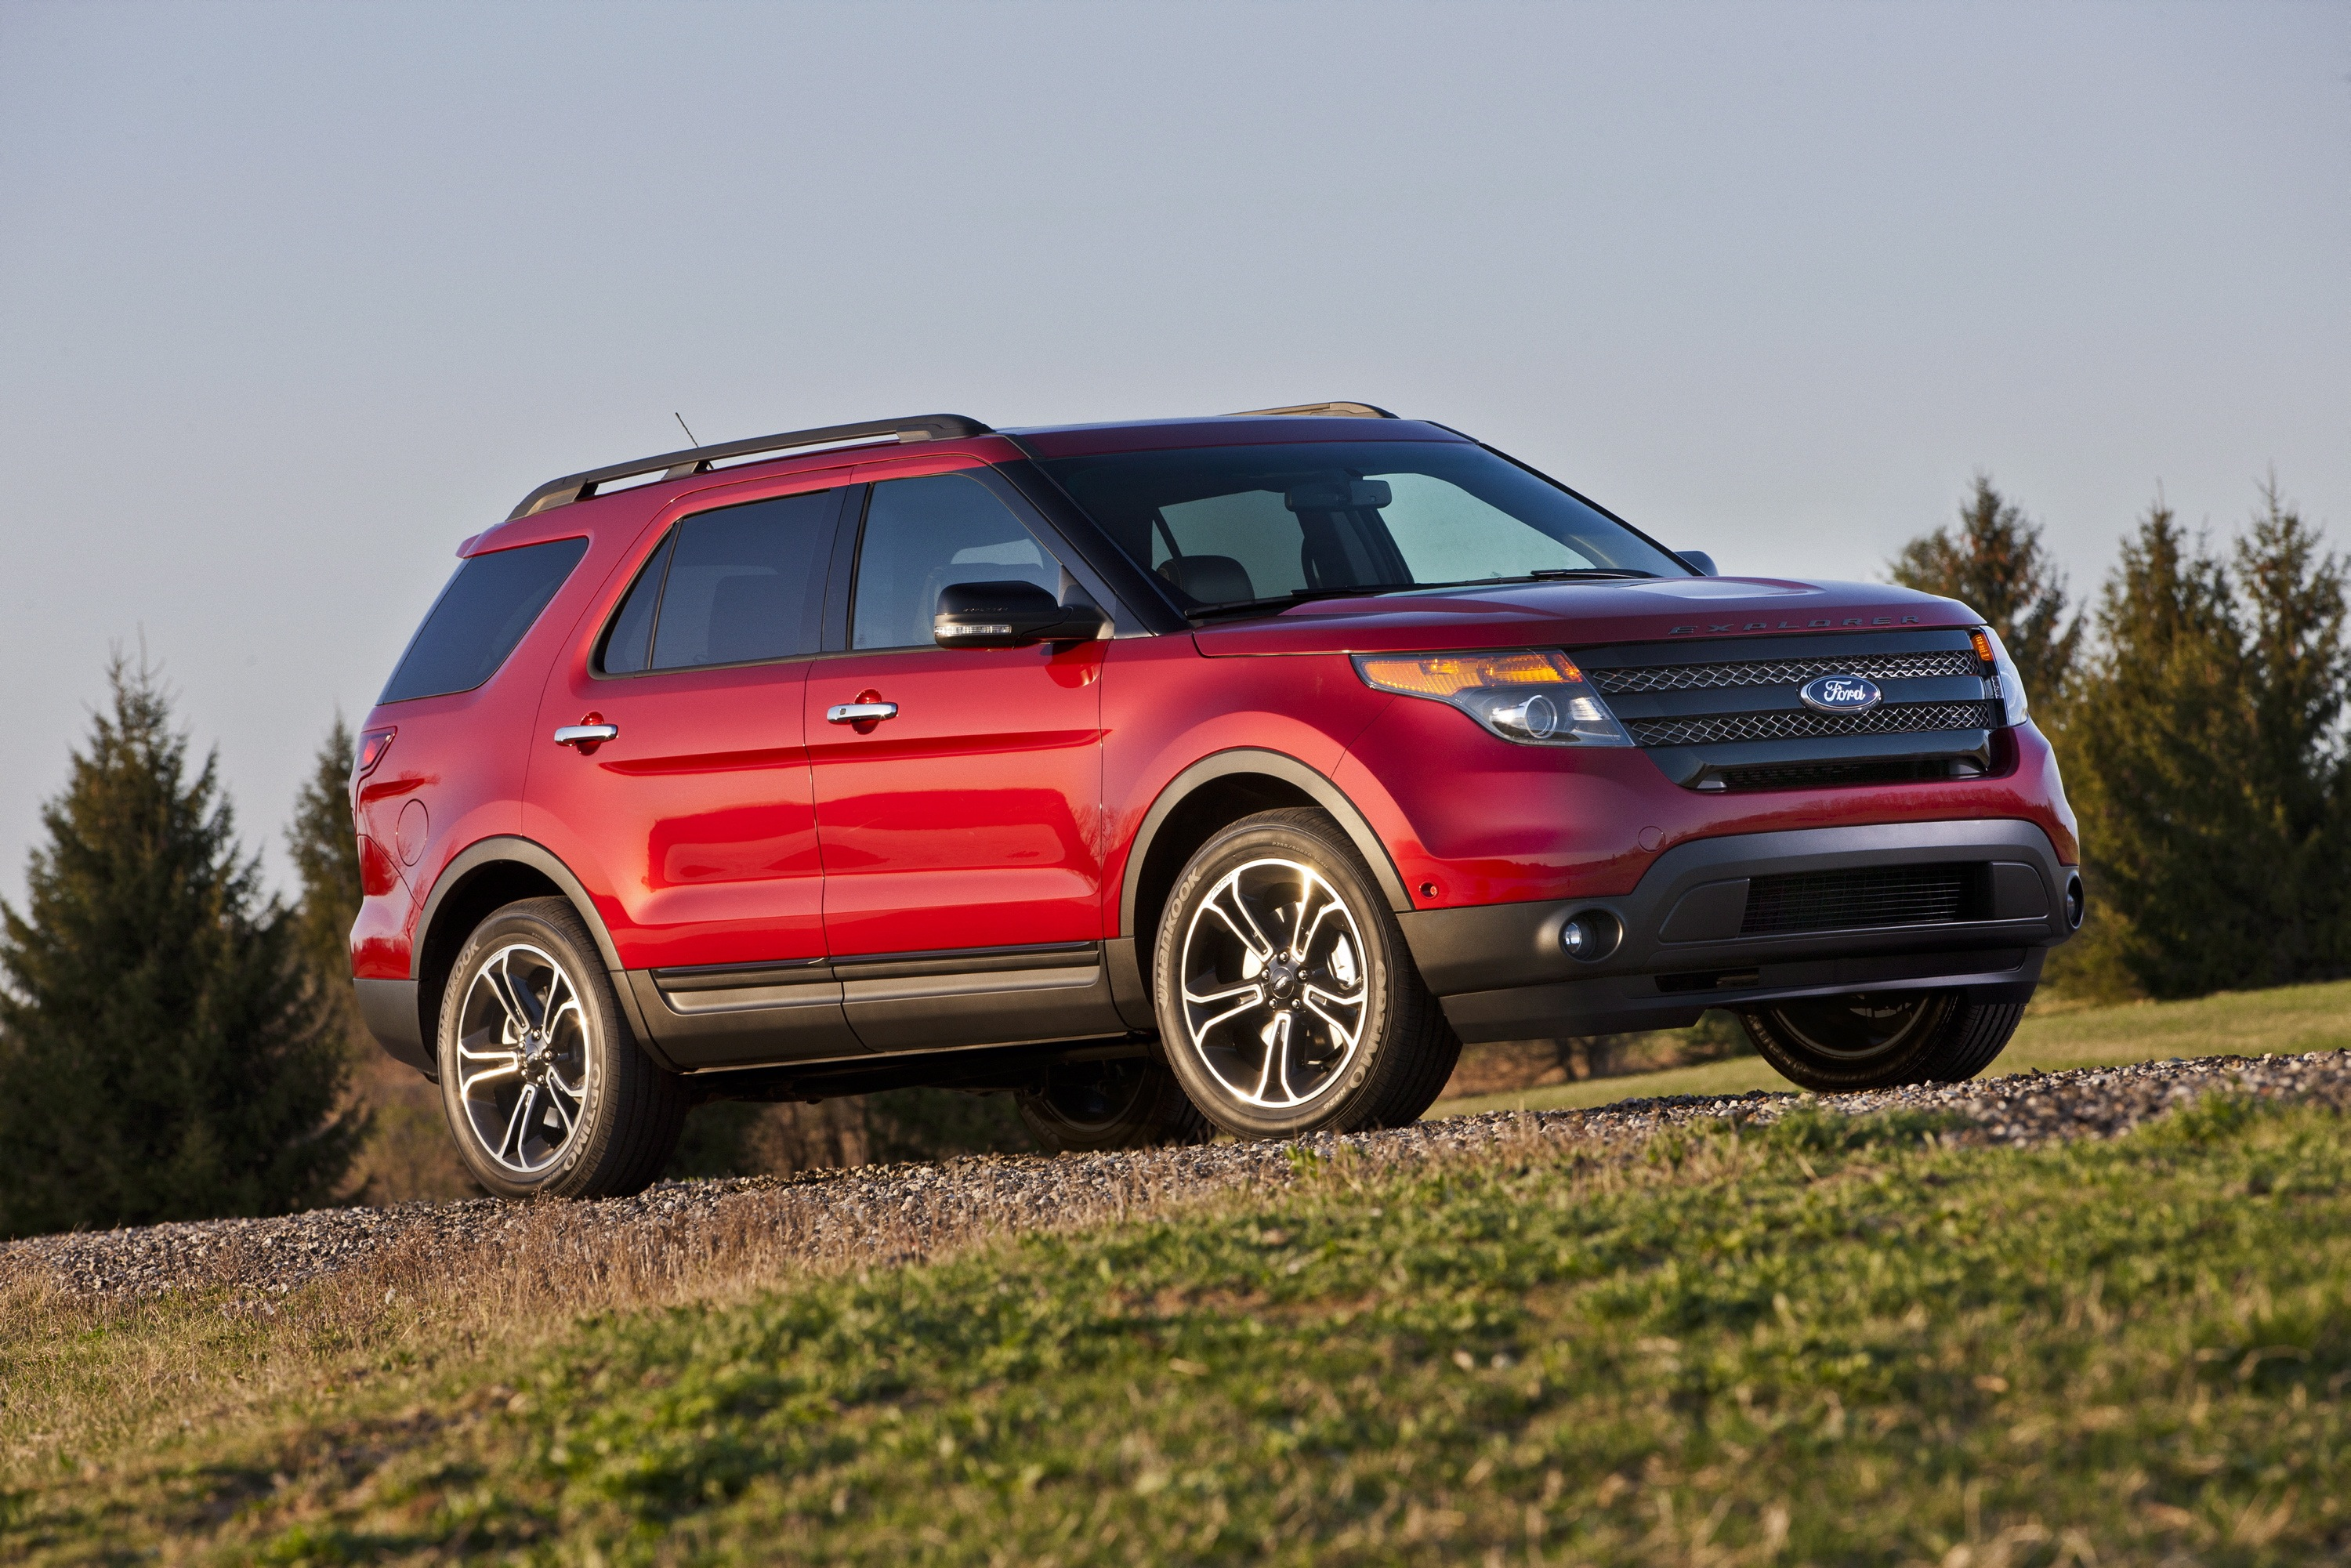 2014 audi q7 2013 subaru legacy 2013 explorer sport car news headlines. Black Bedroom Furniture Sets. Home Design Ideas